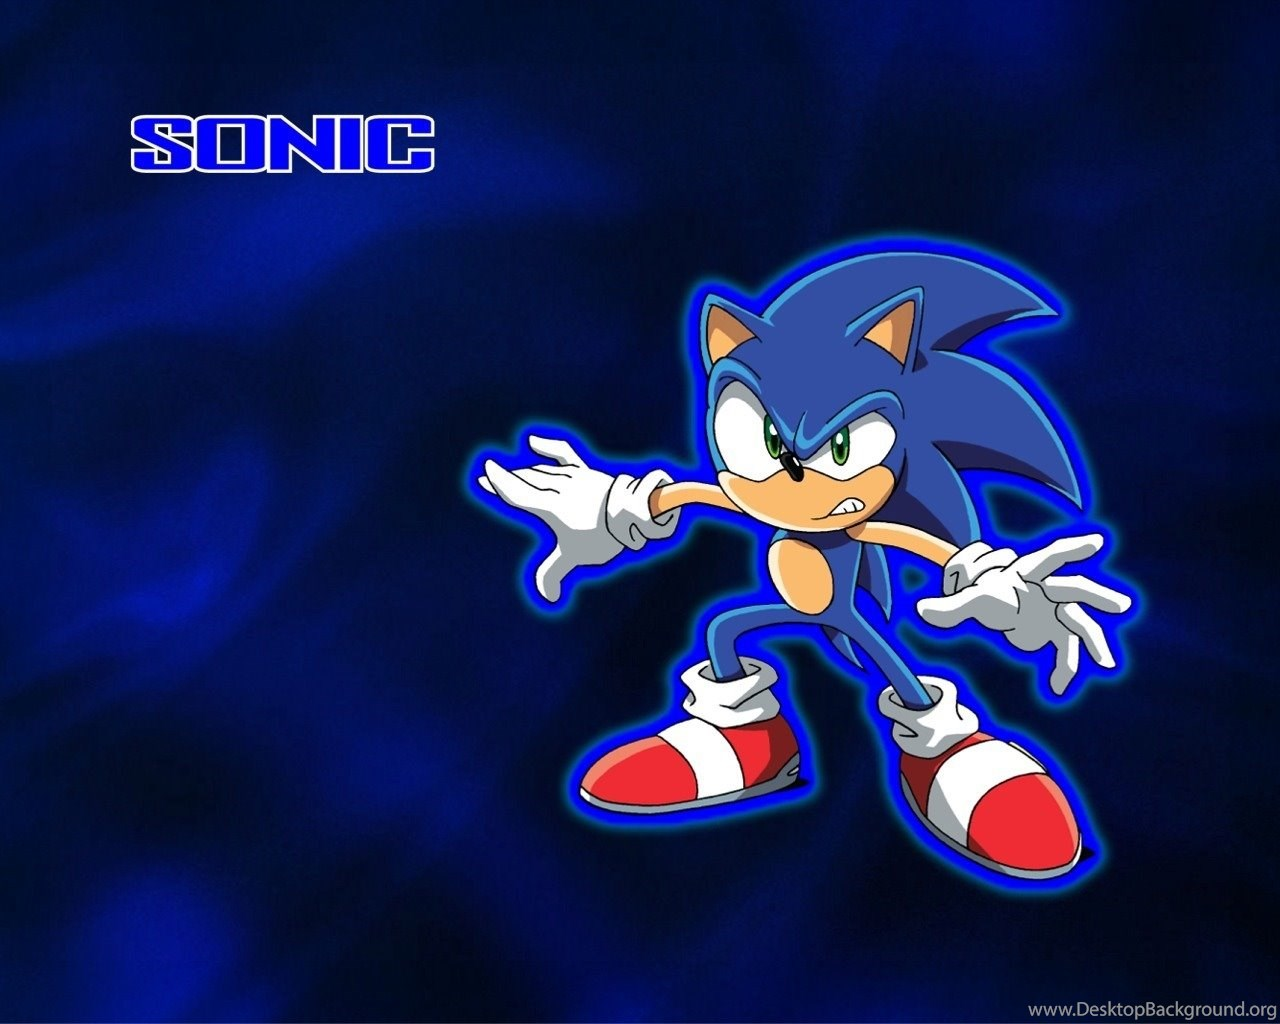 Sonic The Hedgehog Wallpapers Hd Backgrounds Wallpapers Desktop Background